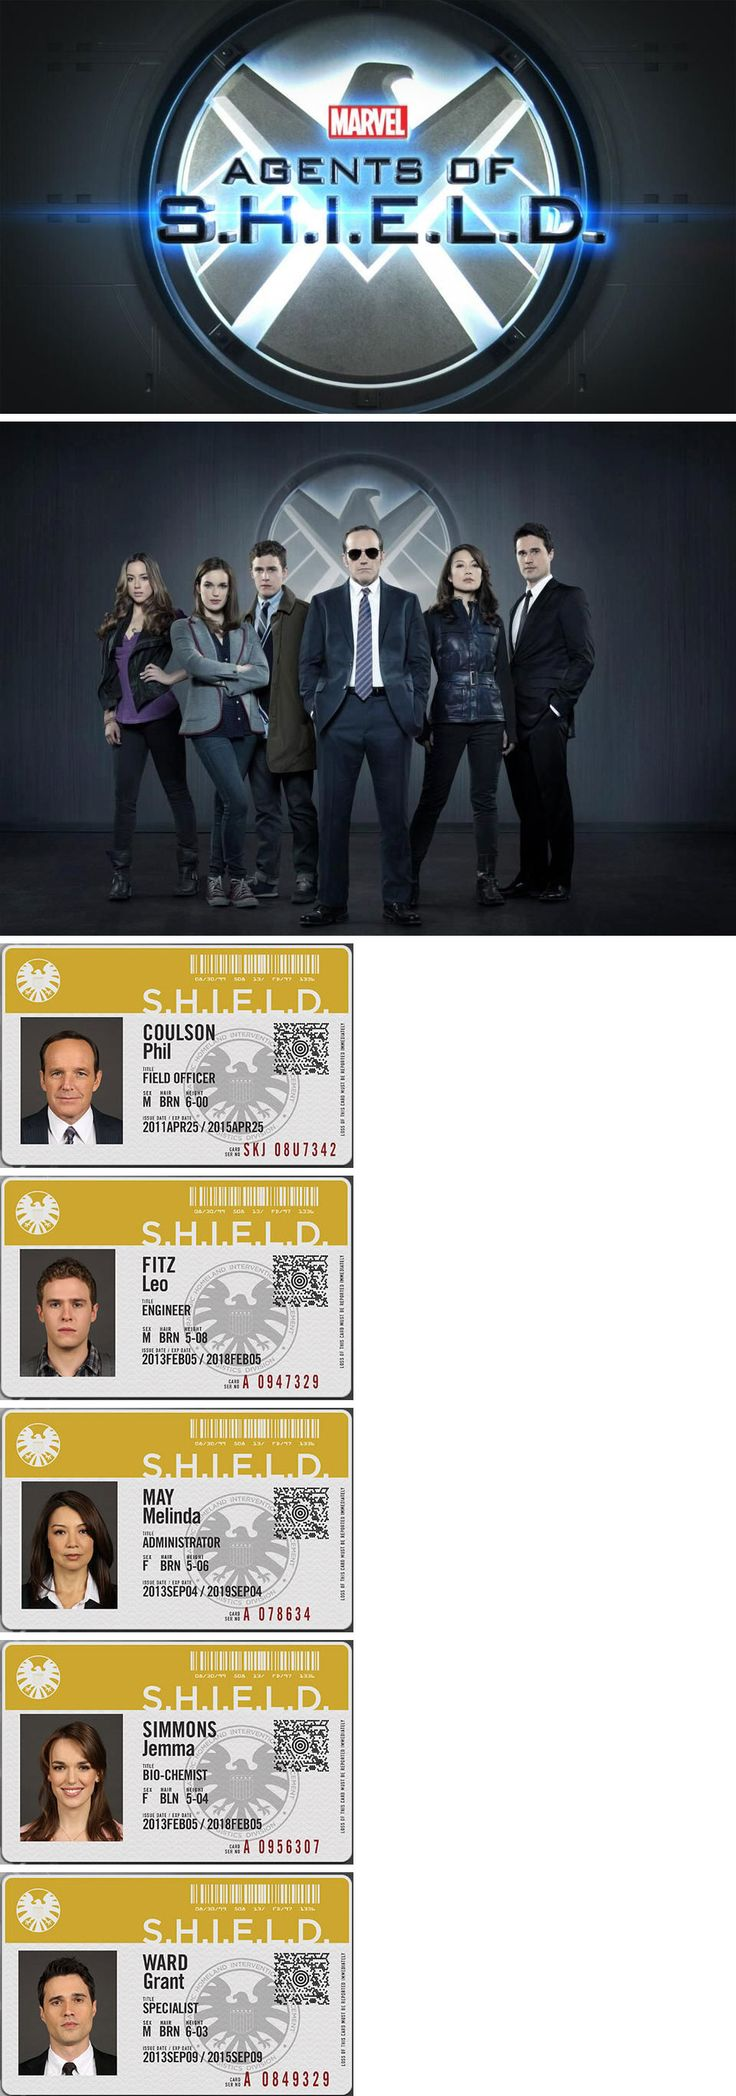 Marvel's Agent of S.H.I.E.L.D. - Phil Coulson & Melinda May & Skye & Leo Fitz & Jemma Simmons & Grant Ward